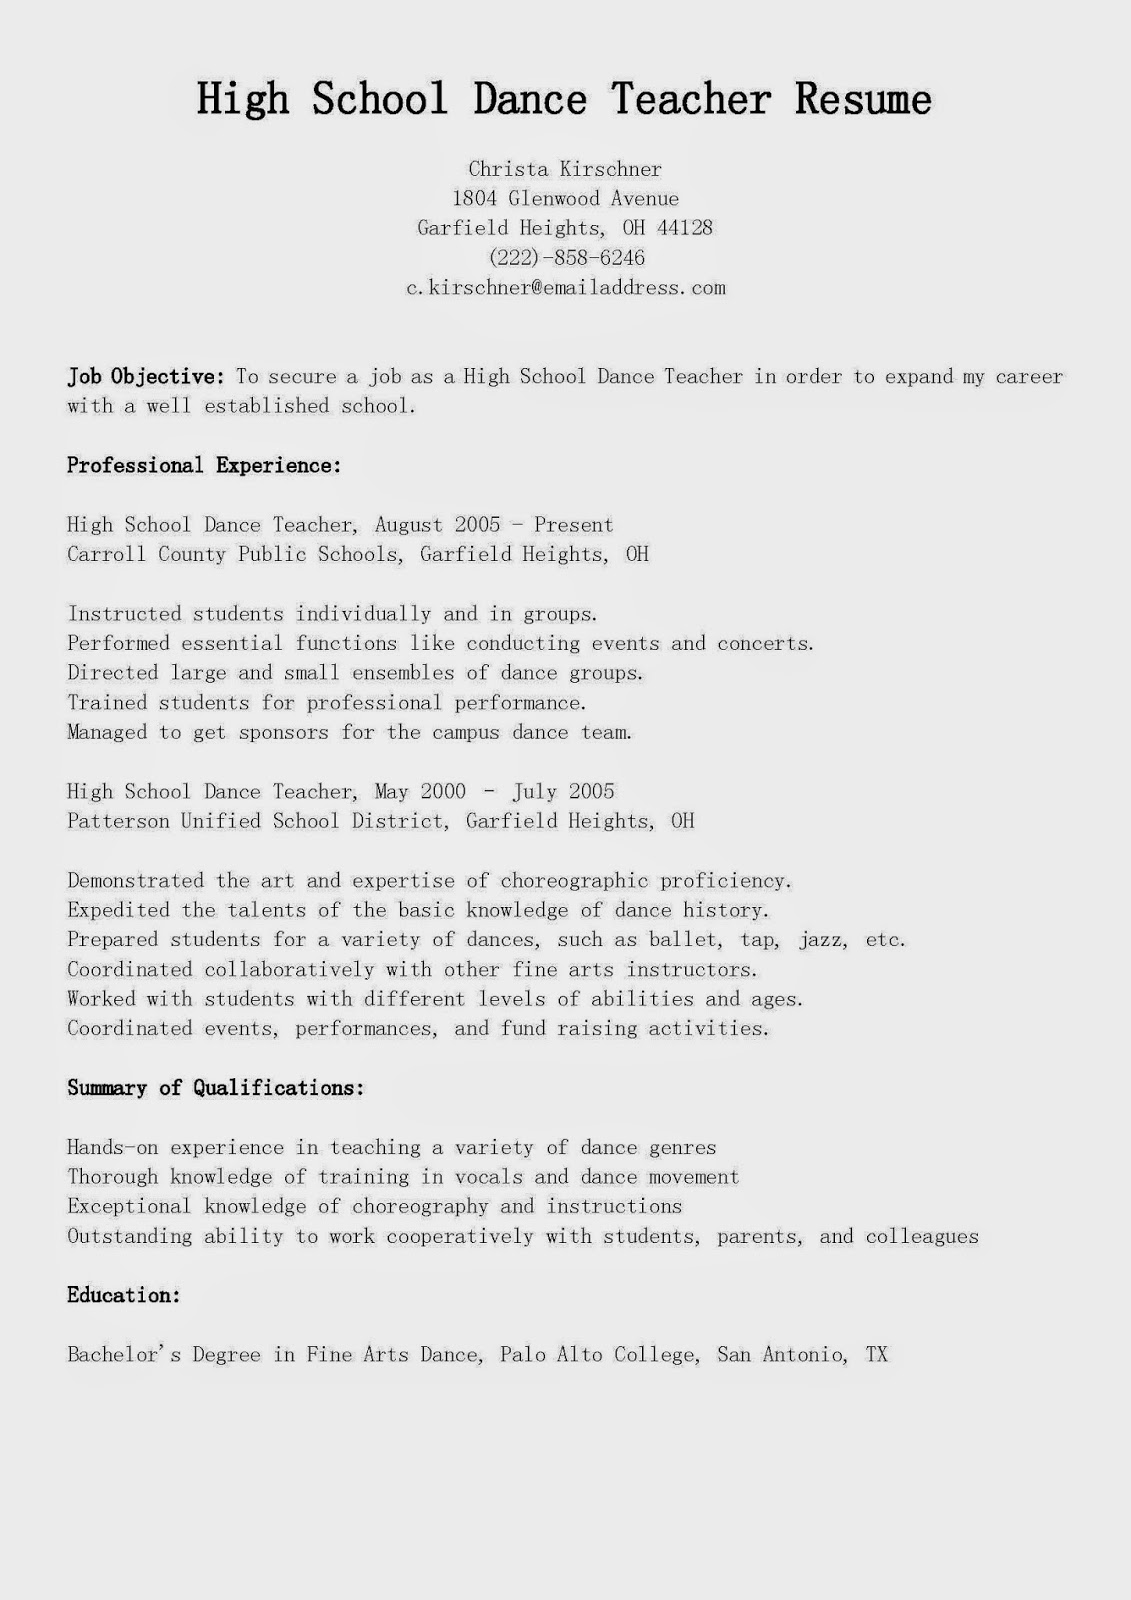 Resume Samples High School Dance Teacher Sample